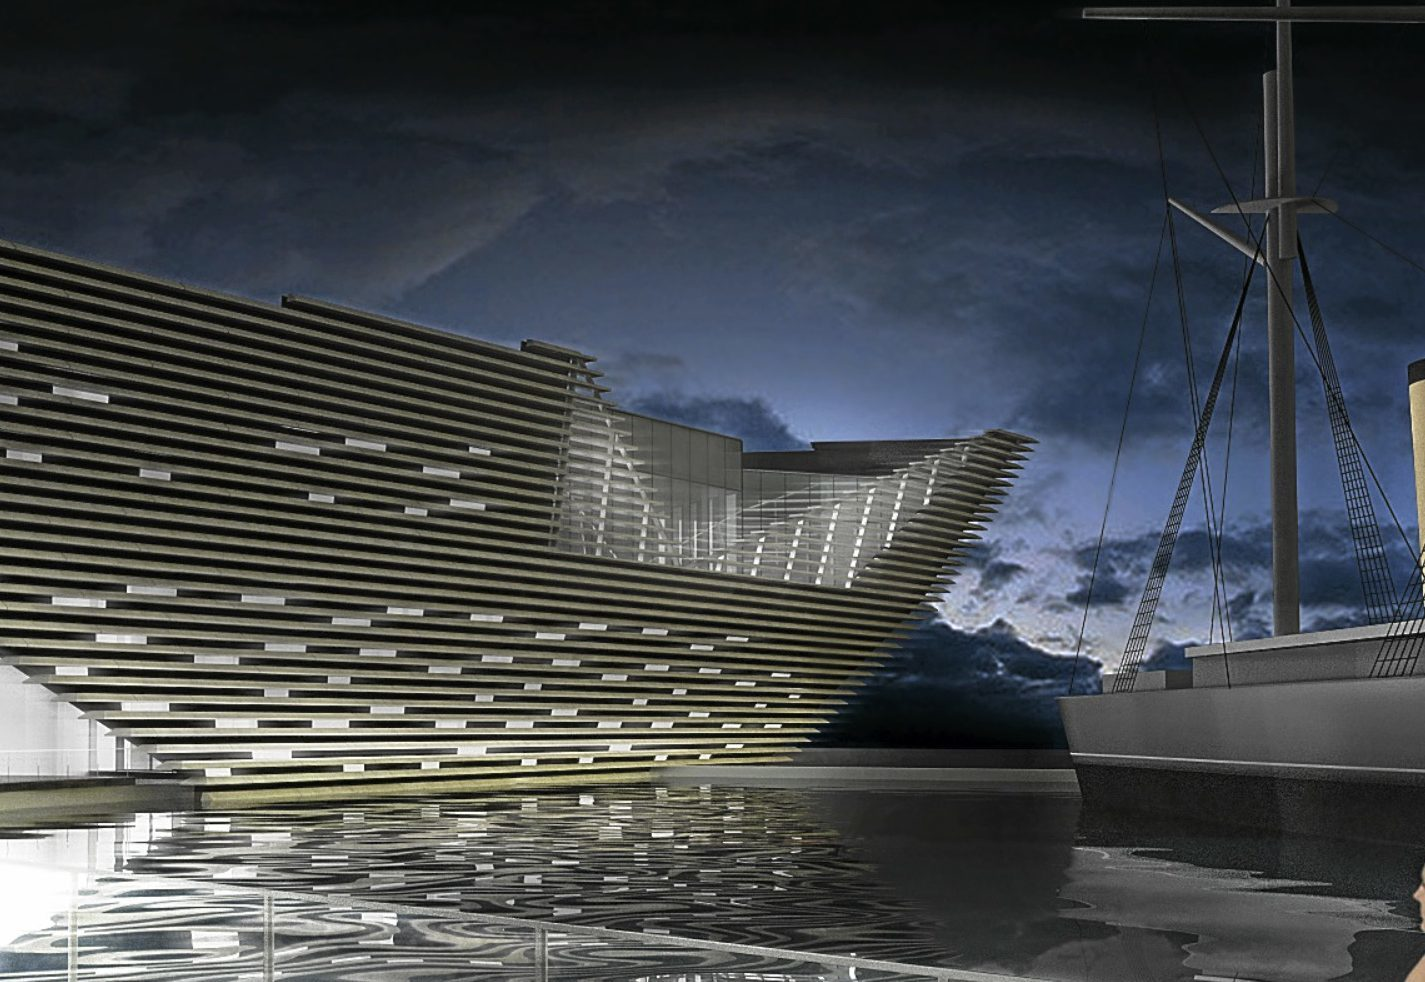 The eatery will have views across the Tay